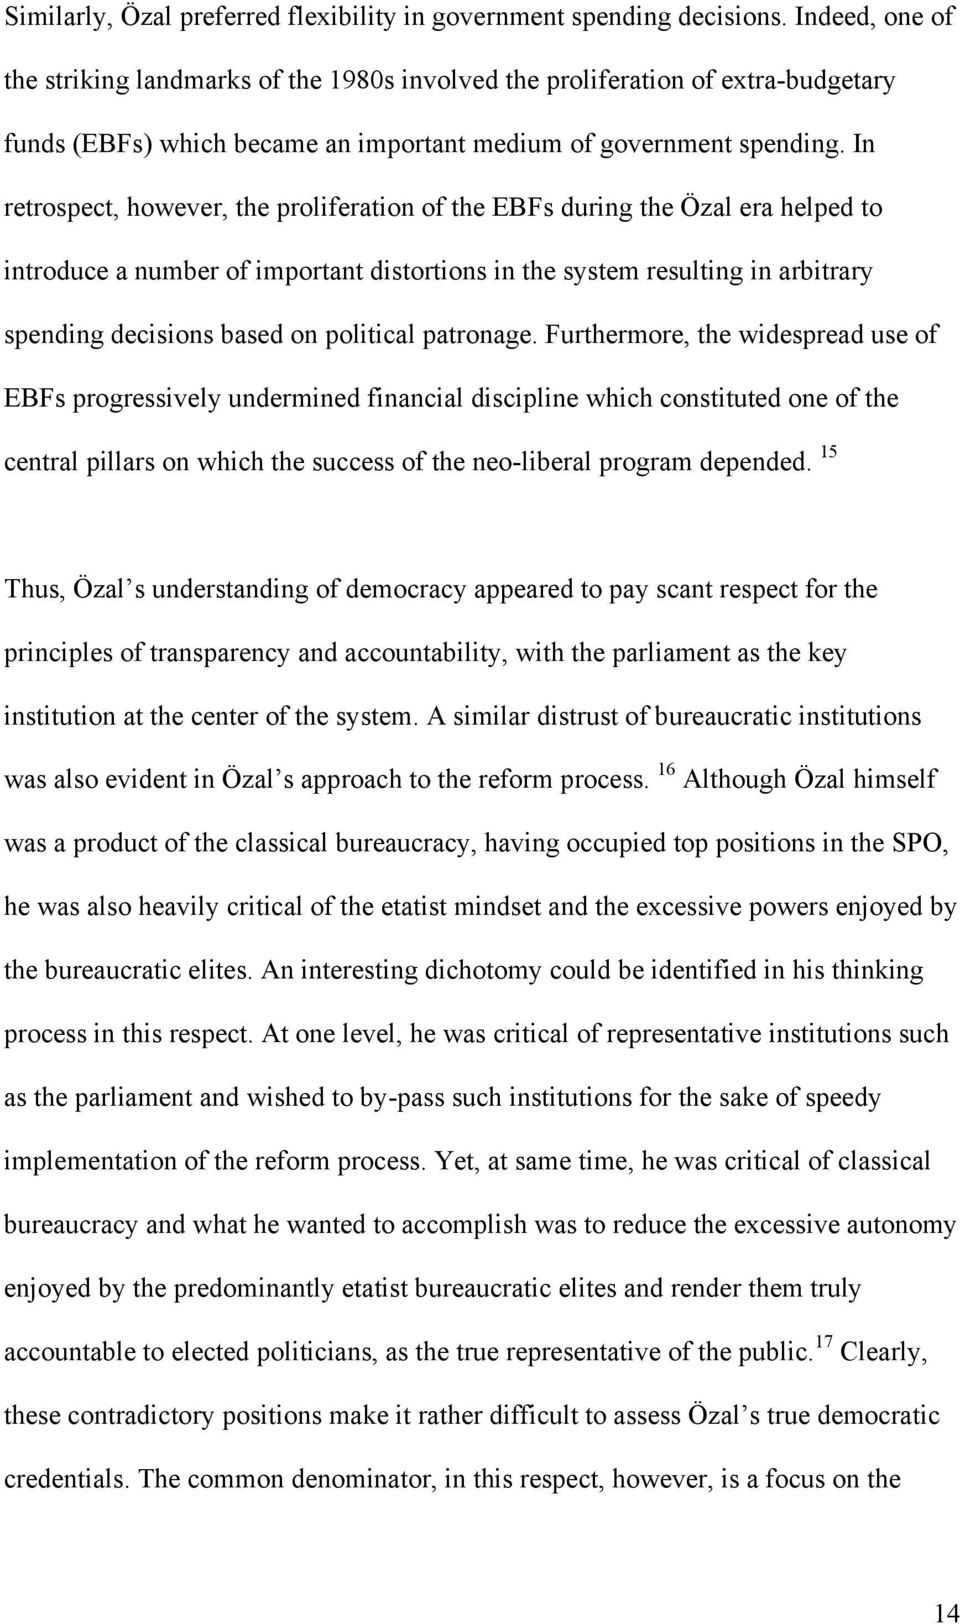 In retrospect, however, the proliferation of the EBFs during the Özal era helped to introduce a number of important distortions in the system resulting in arbitrary spending decisions based on